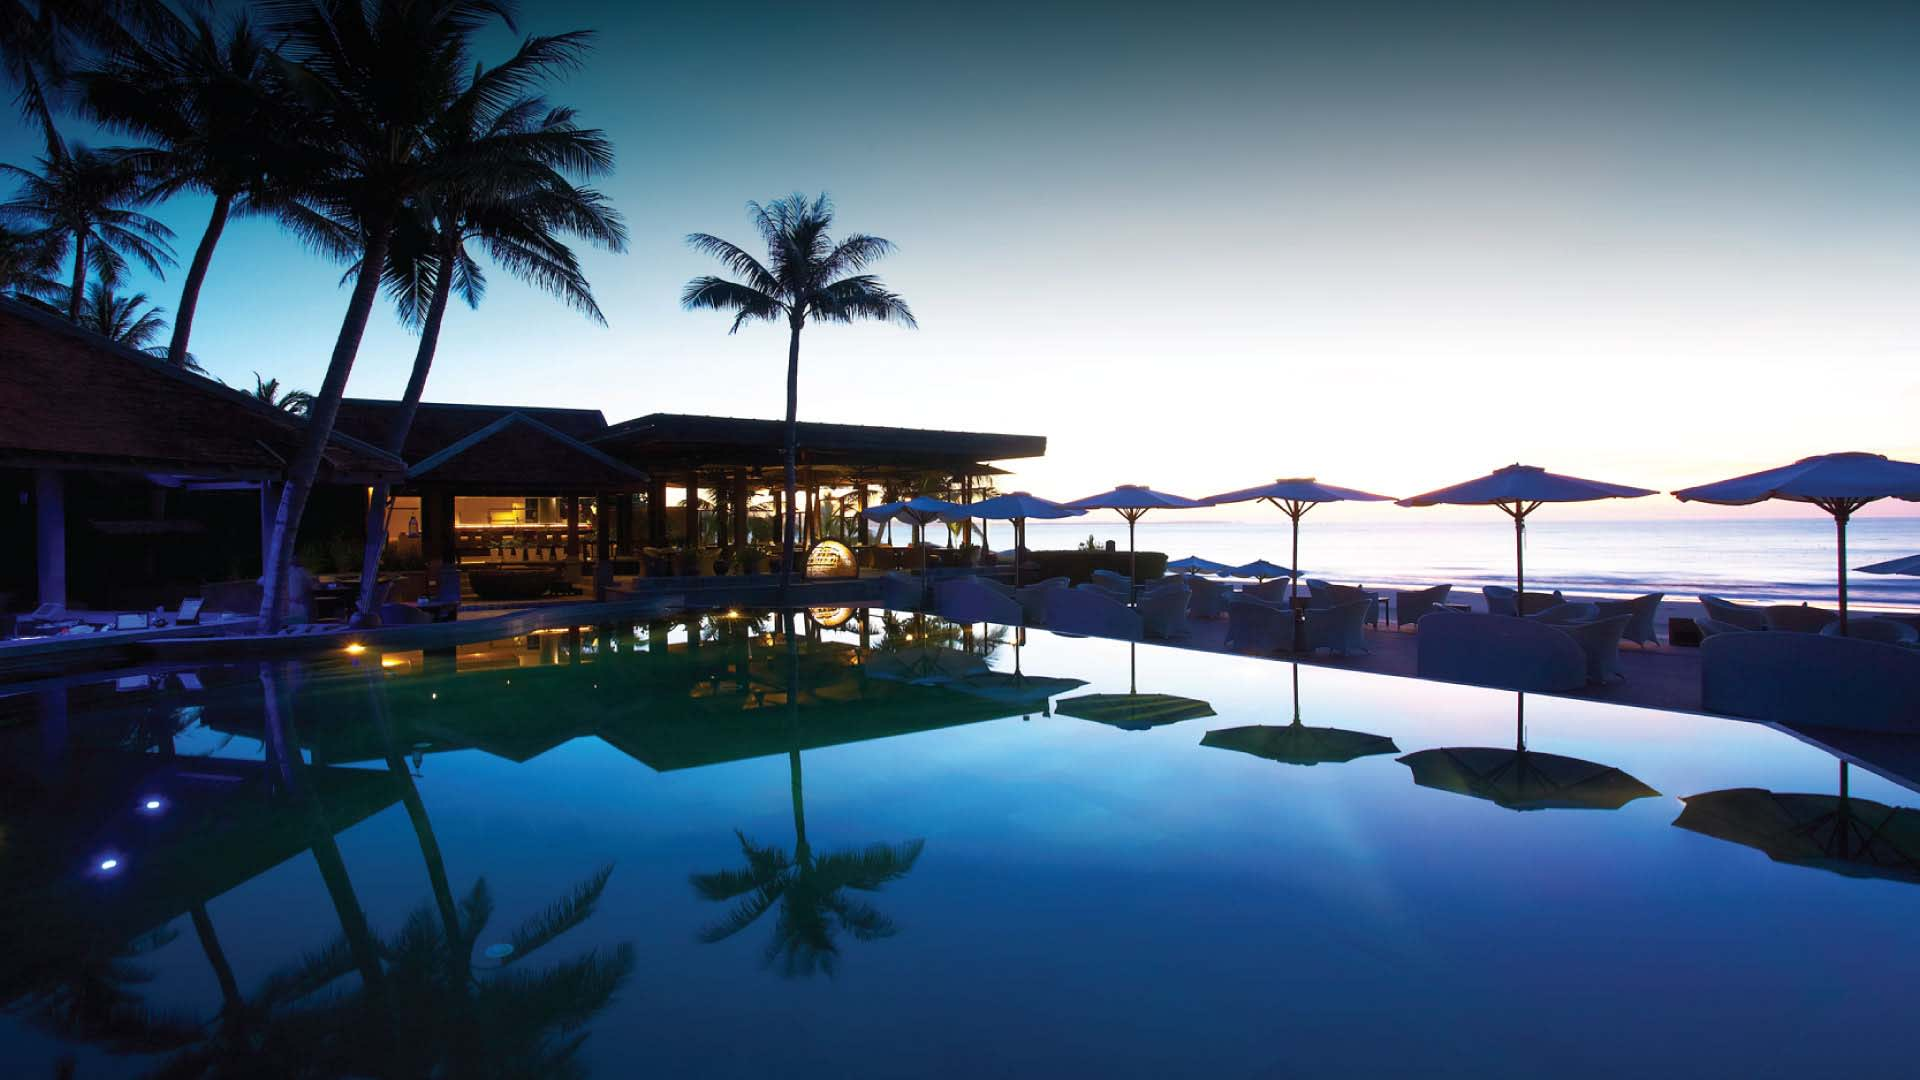 https://assets.anantara.com/image/upload/q_auto/media/minor/anantara/images/anantara-mui-ne-resort/the-resort/desktop-banner/anantara_mui_ne_pool_header_1920x1080.jpg